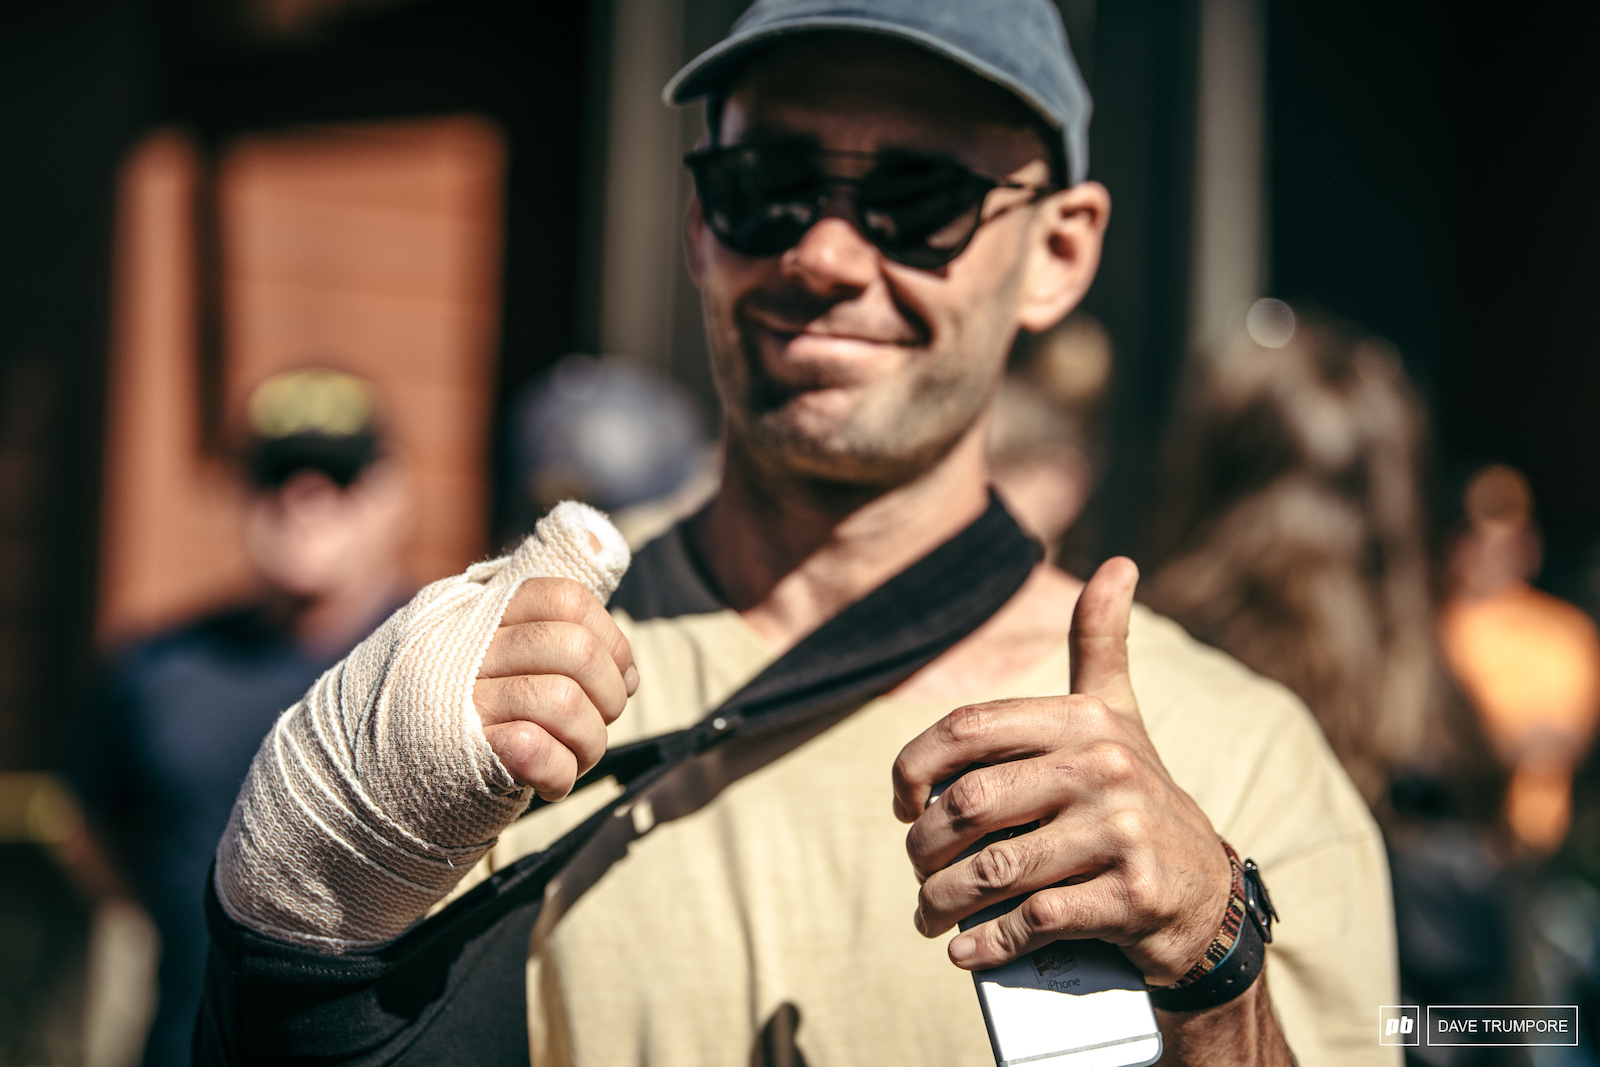 The spirit of Enduro also known as Eddie Masters was all thumbs up today despite his setback